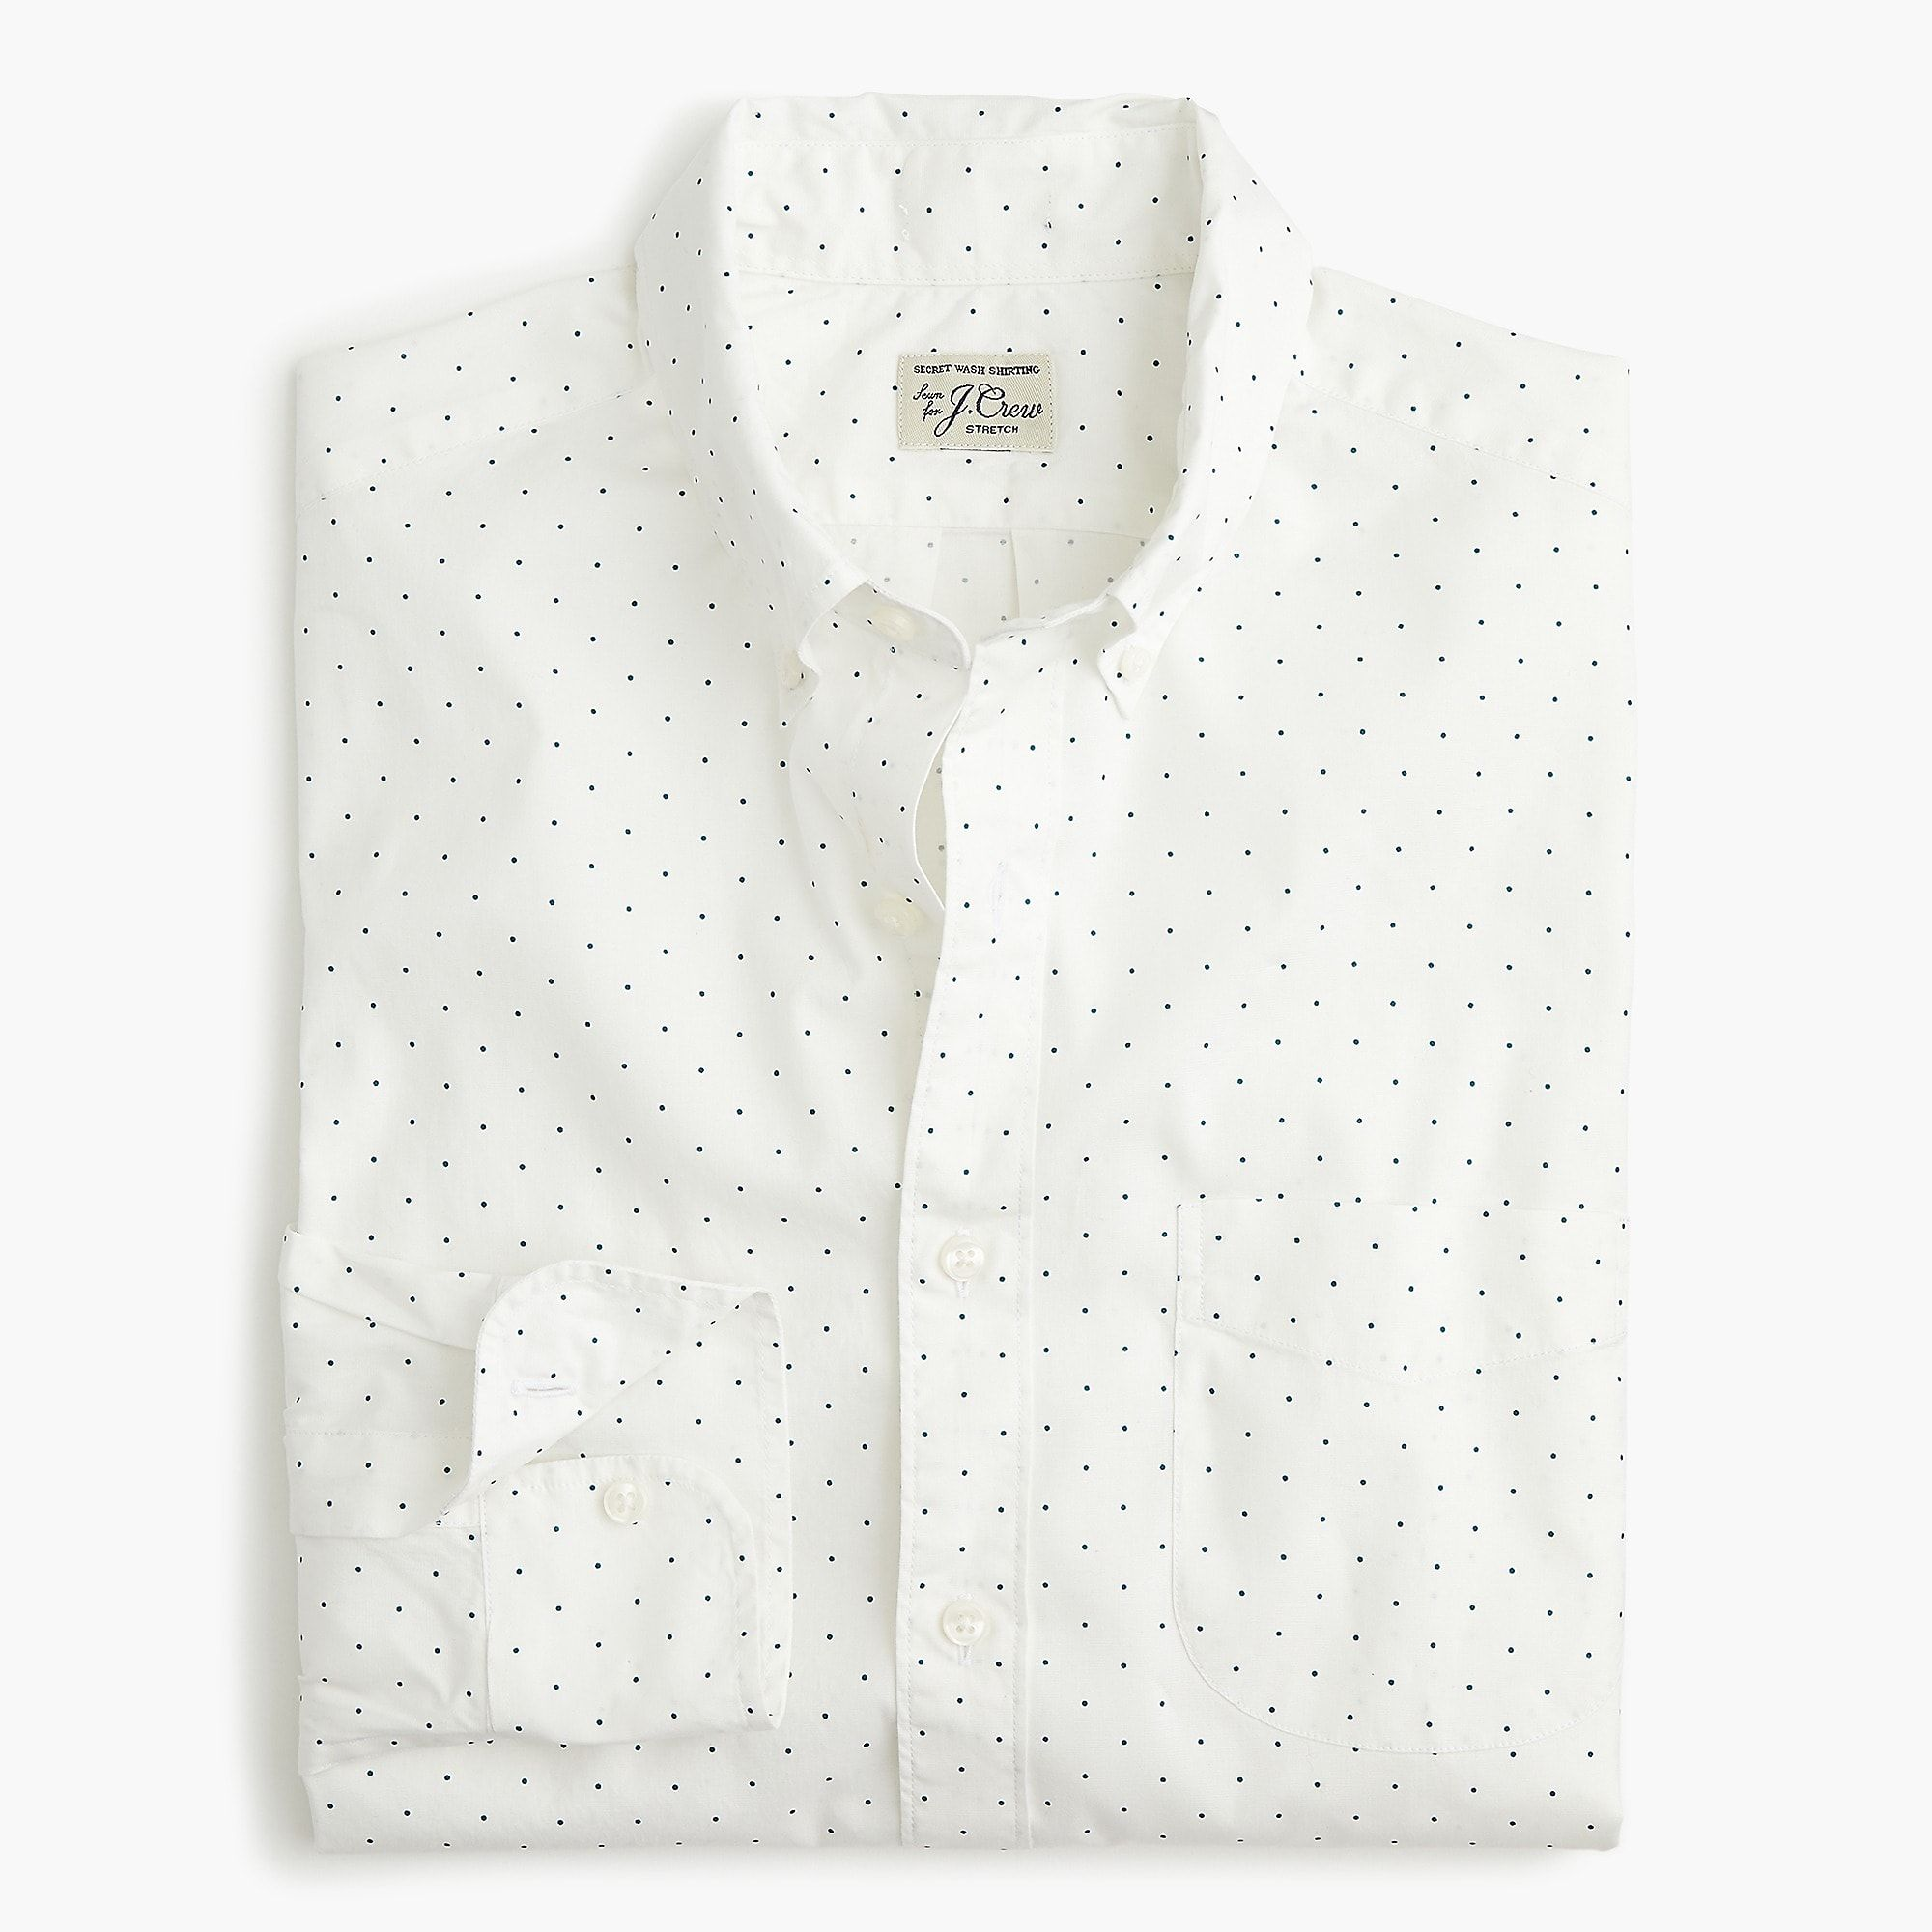 a994f51e25b6a Shop the Stretch Secret Wash shirt in medium-dot print at J.Crew and see  the entire selection of Men's Shirts. Shop Men's clothing & accessories at  J.Crew.